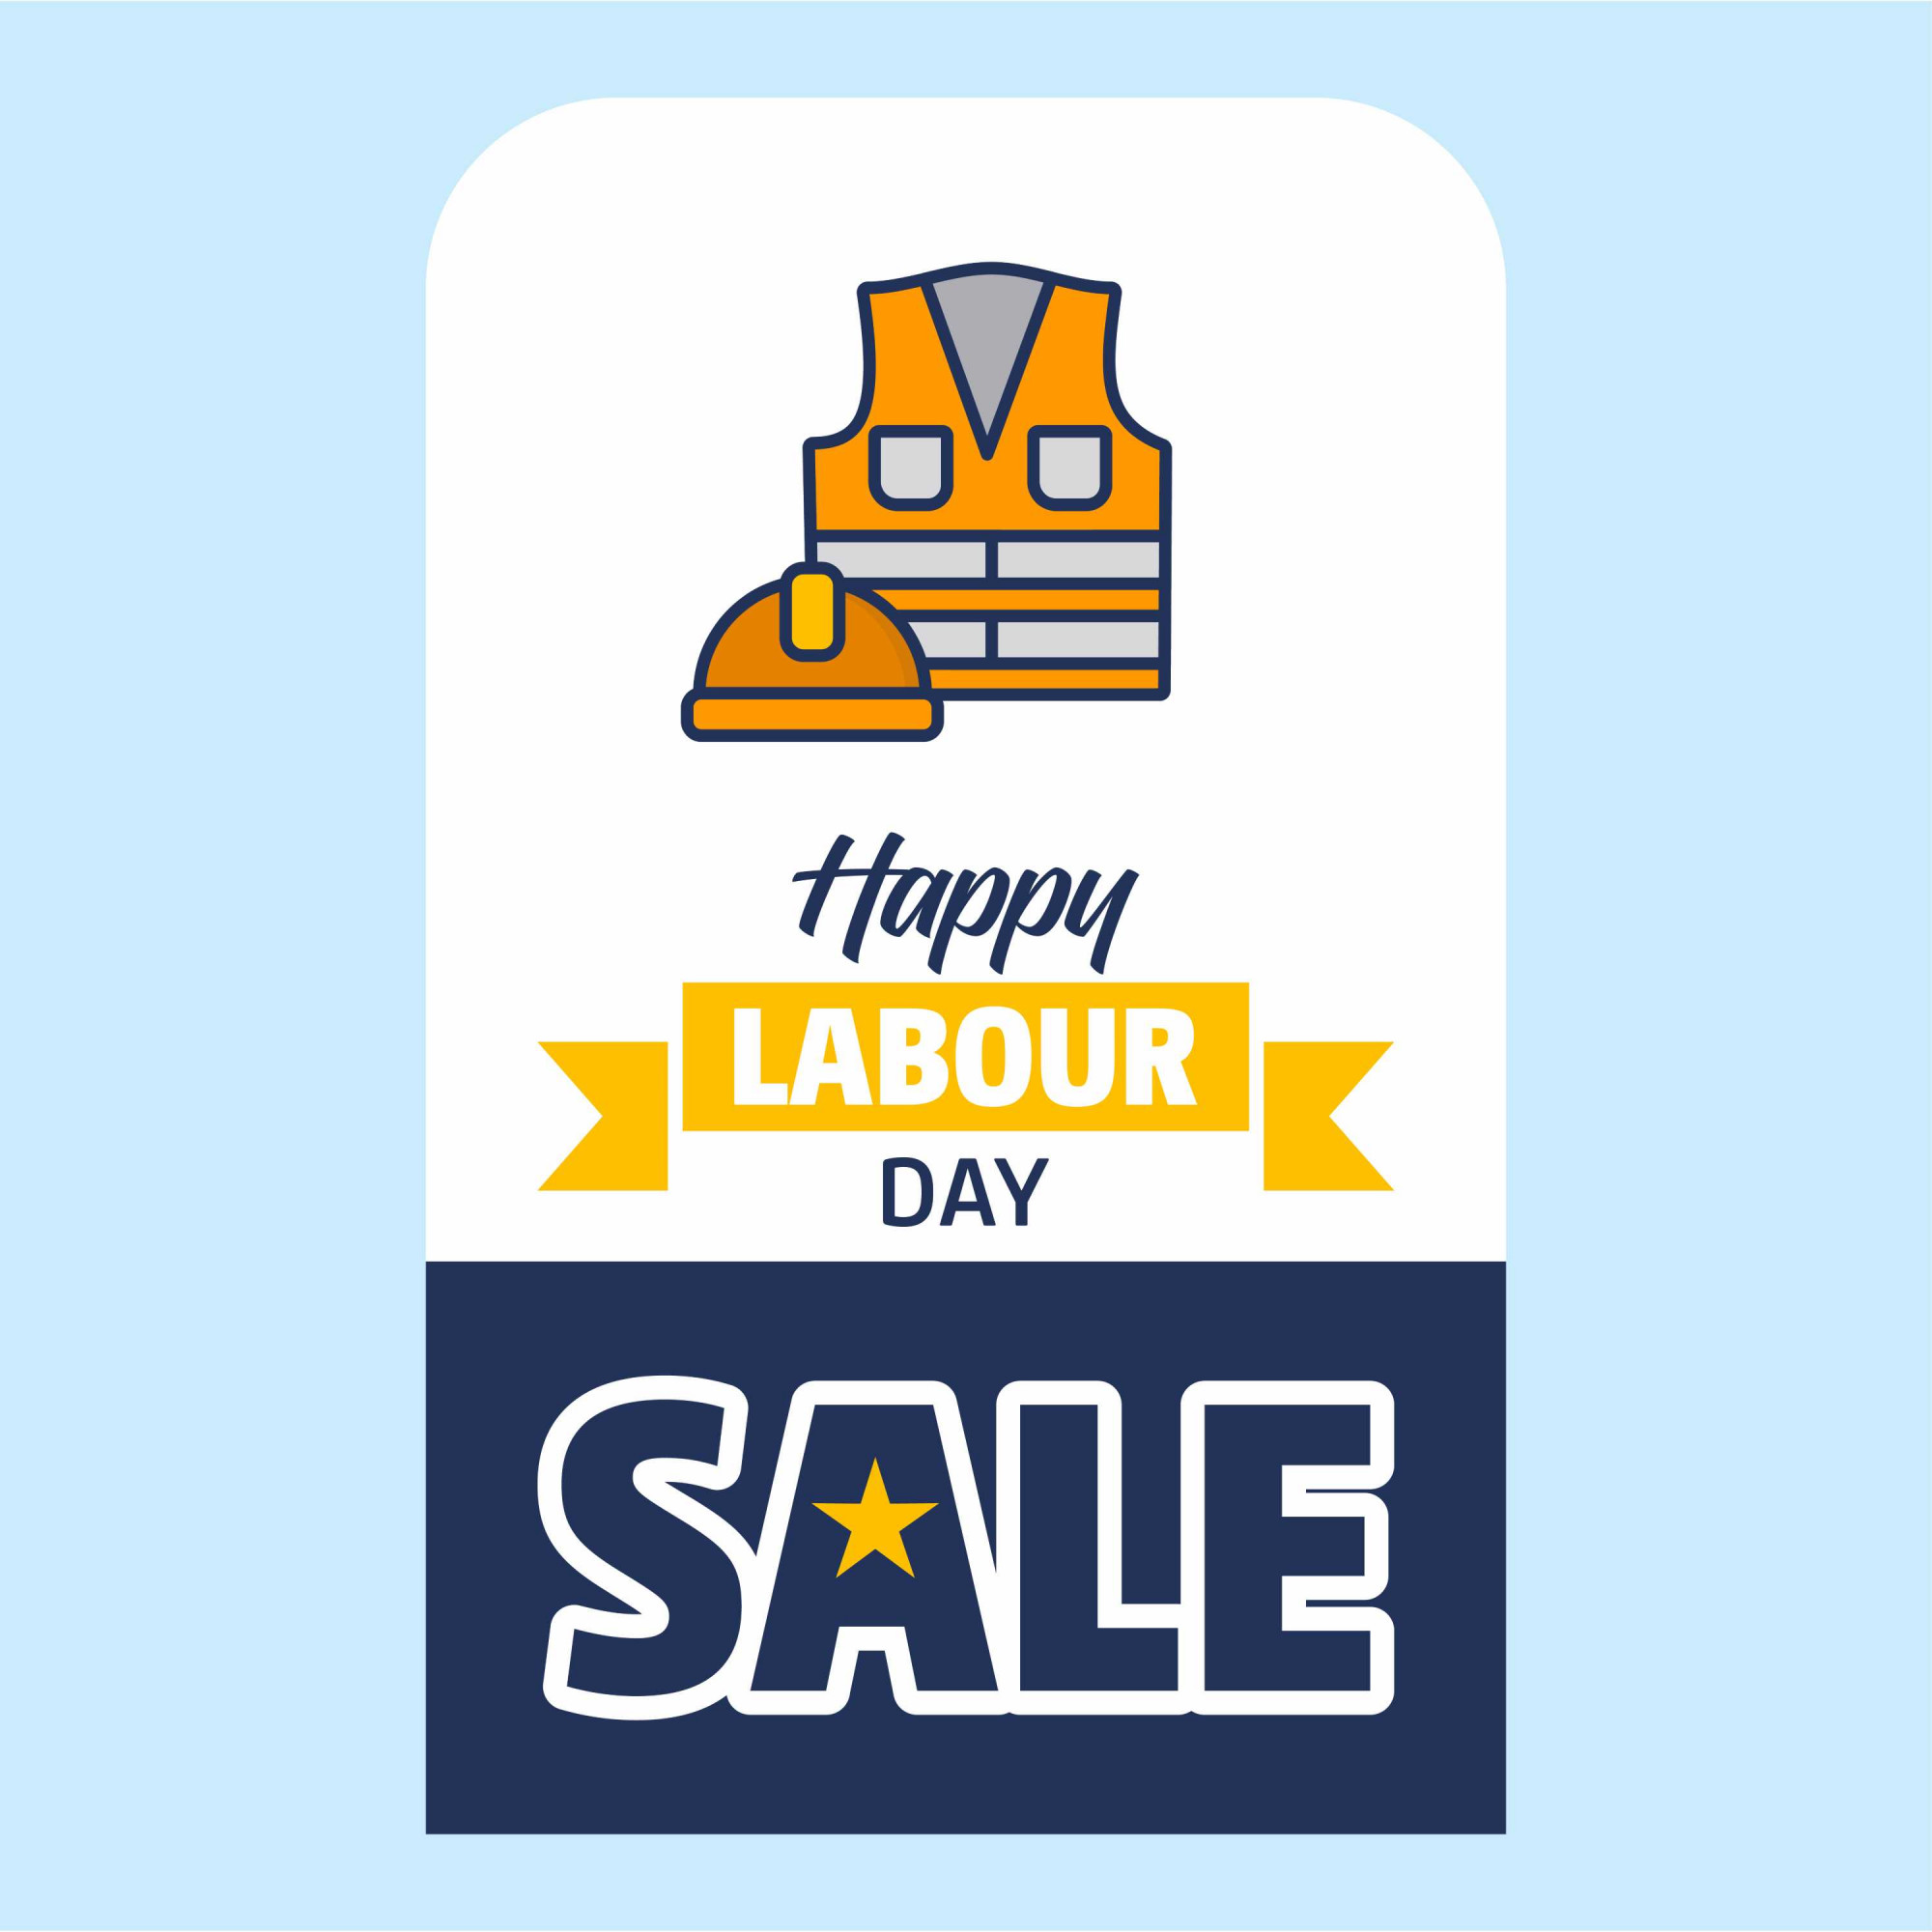 Happy Labour day Sale Design